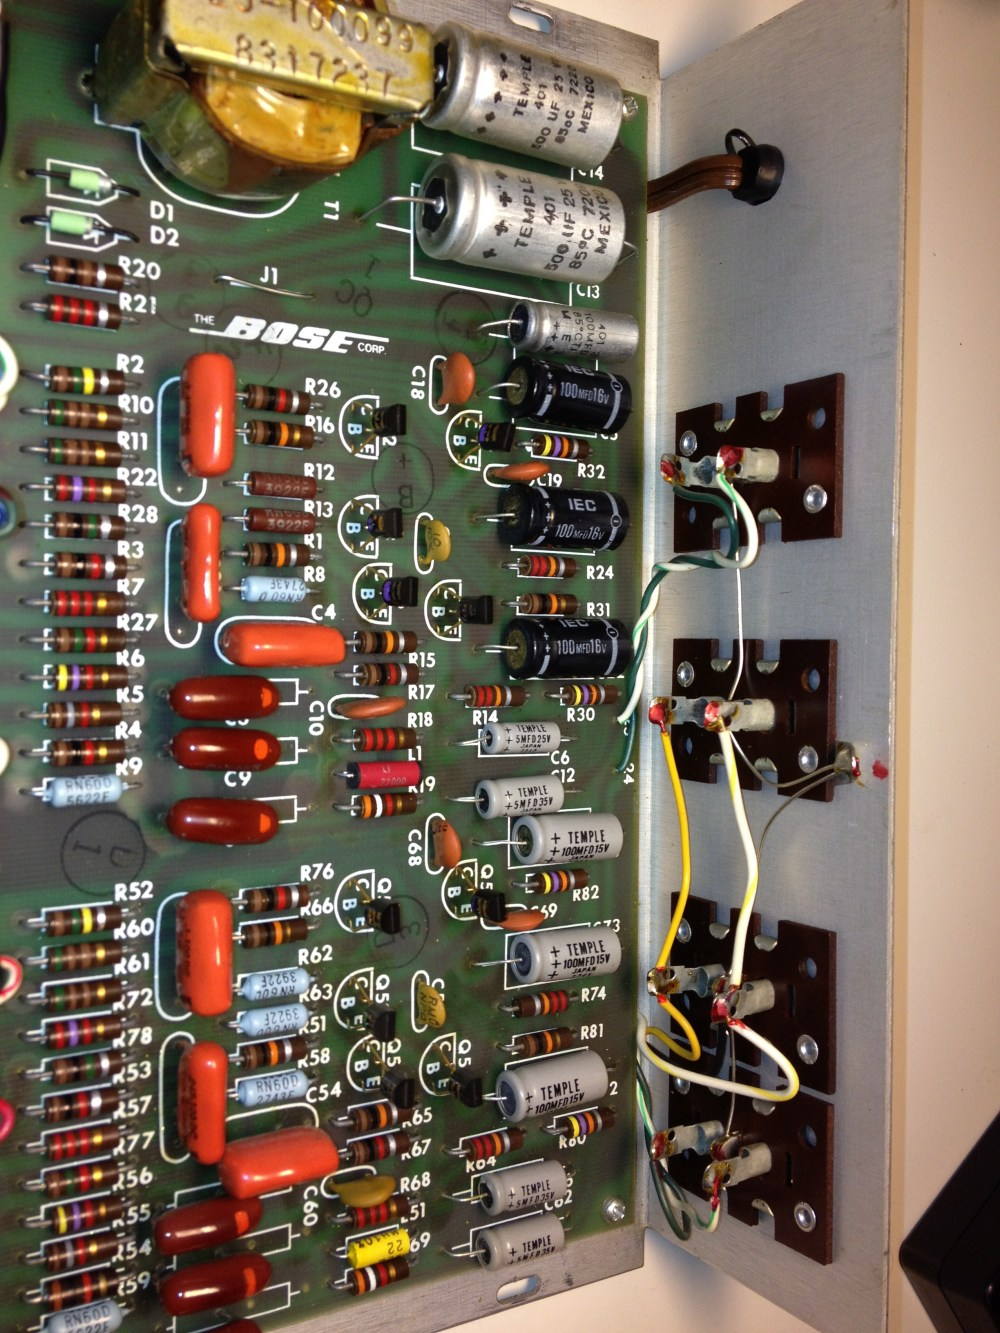 medium resolution of bose 901 eq board before